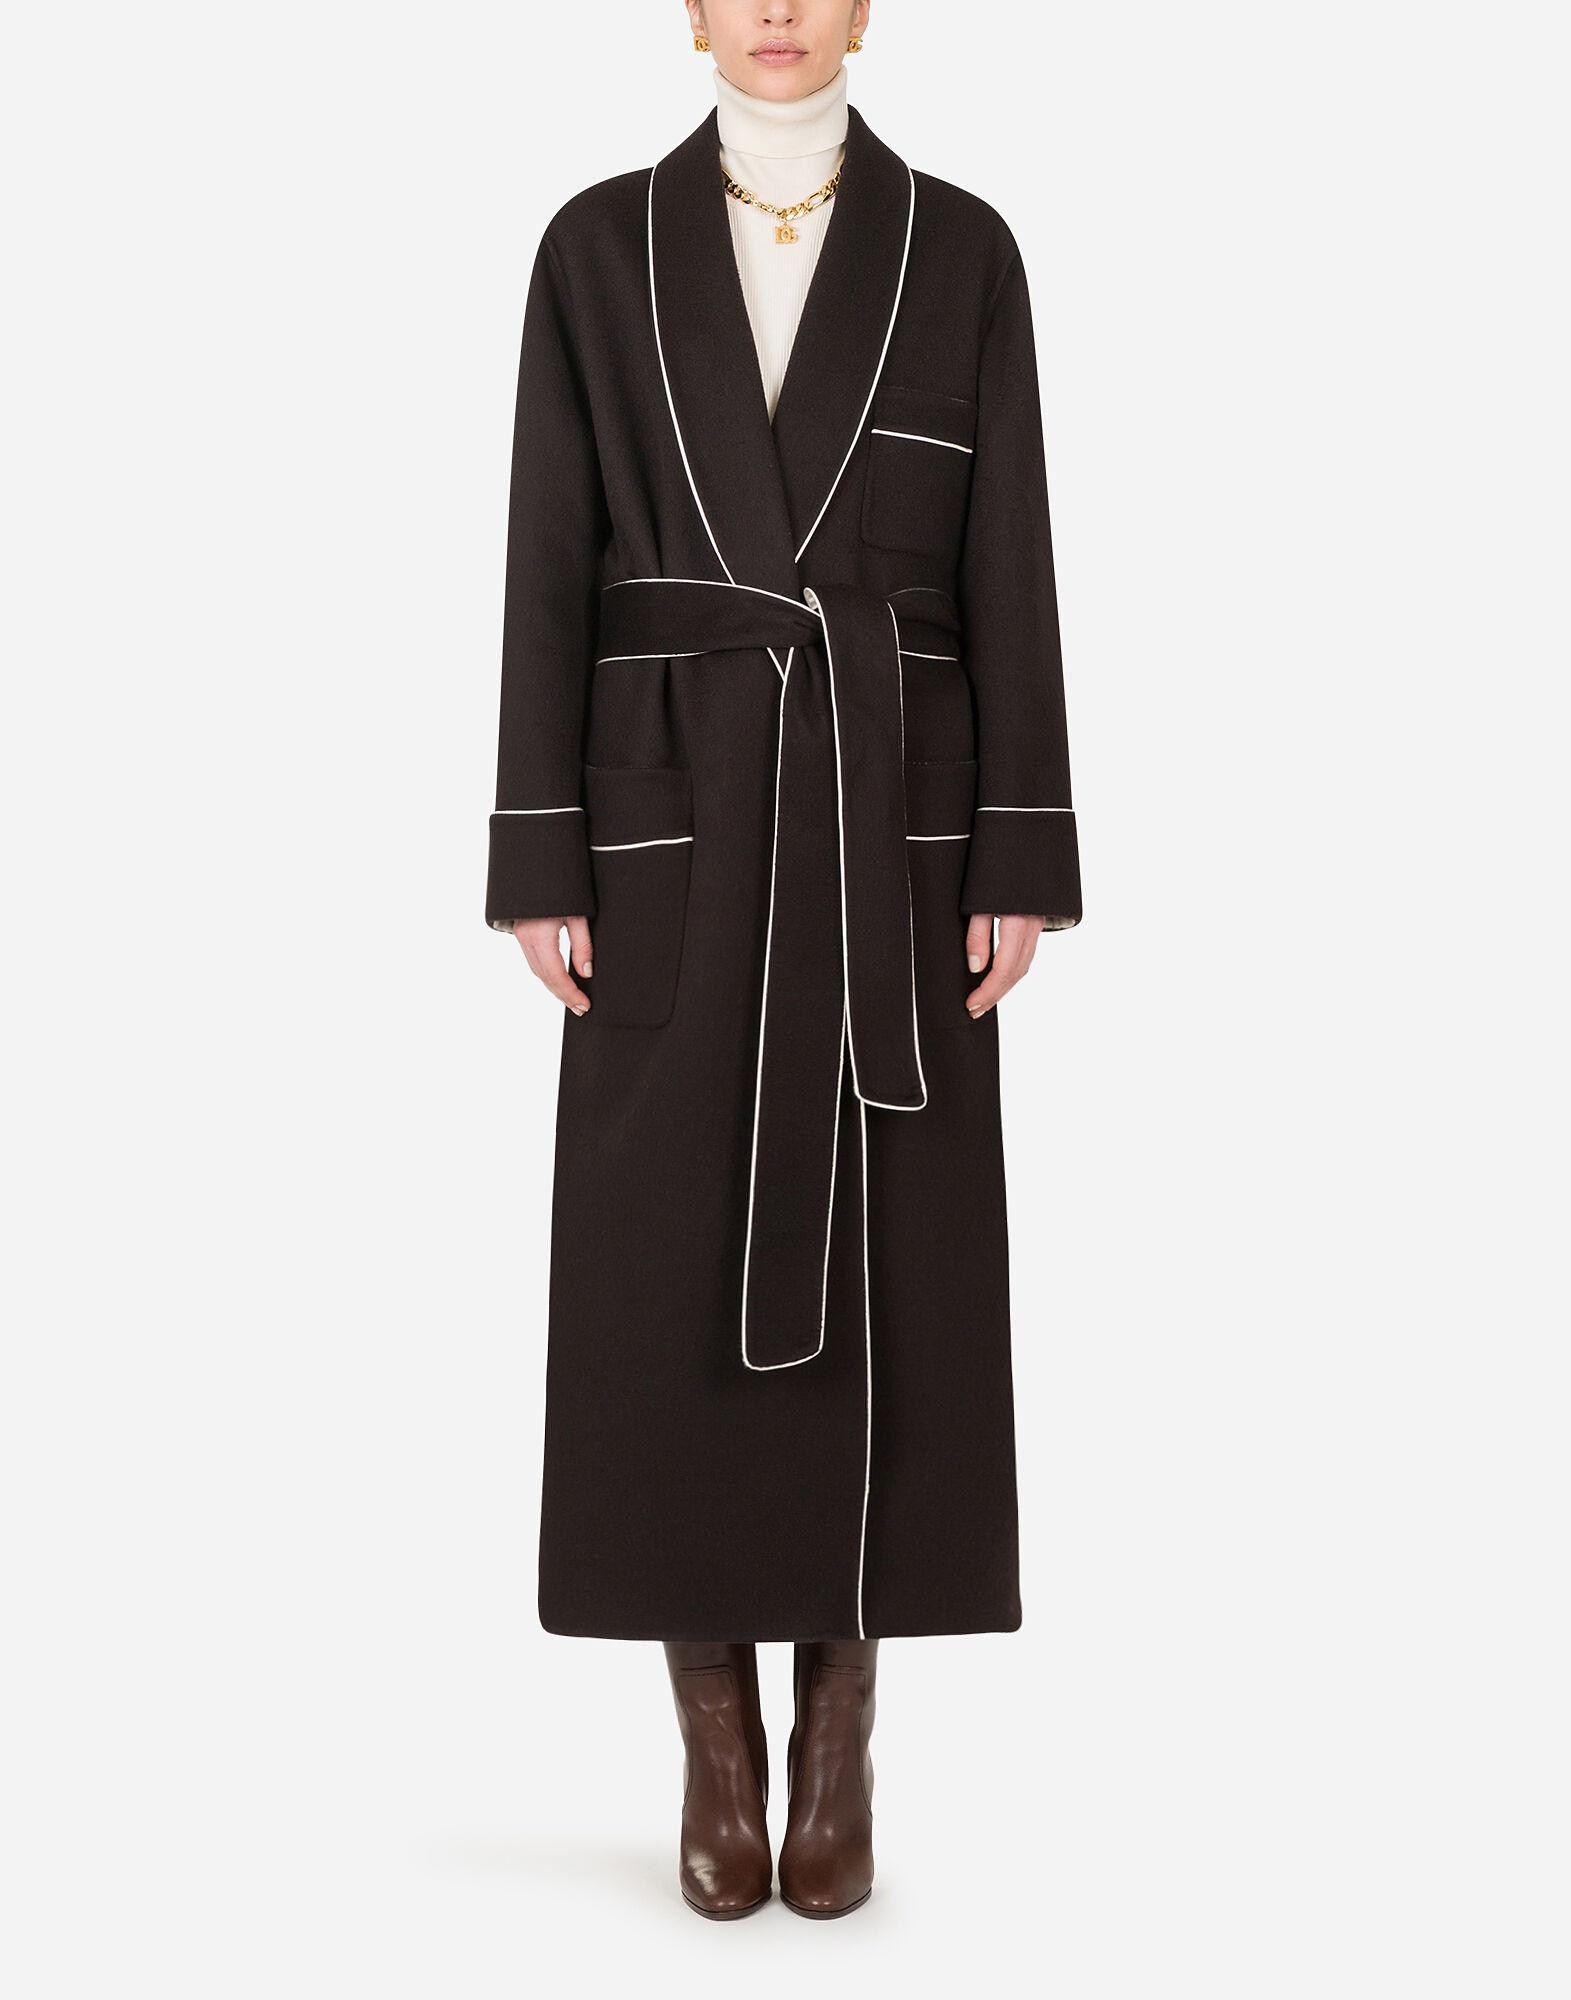 Robe-style jacket in doubled cashmere with belt